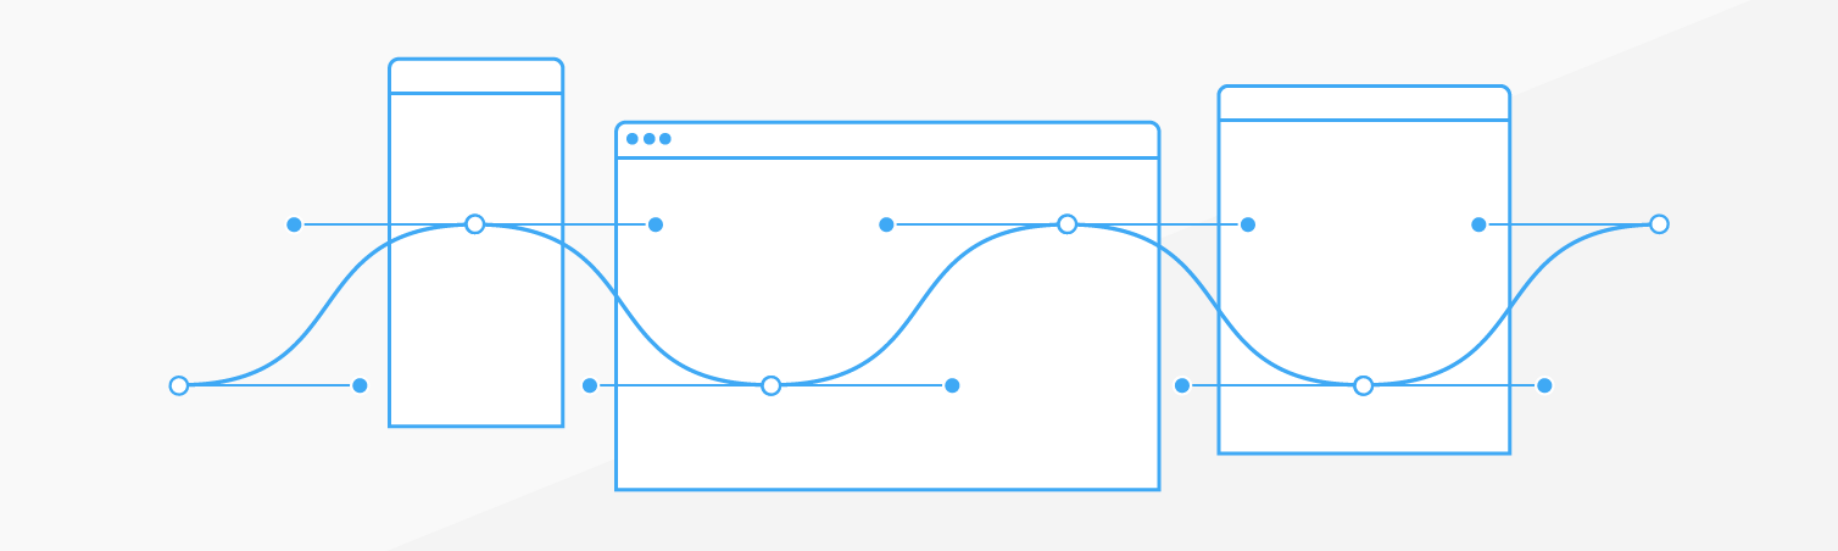 Crafting Easing Curves for User Interfaces - Ryan Brownhill - Medium